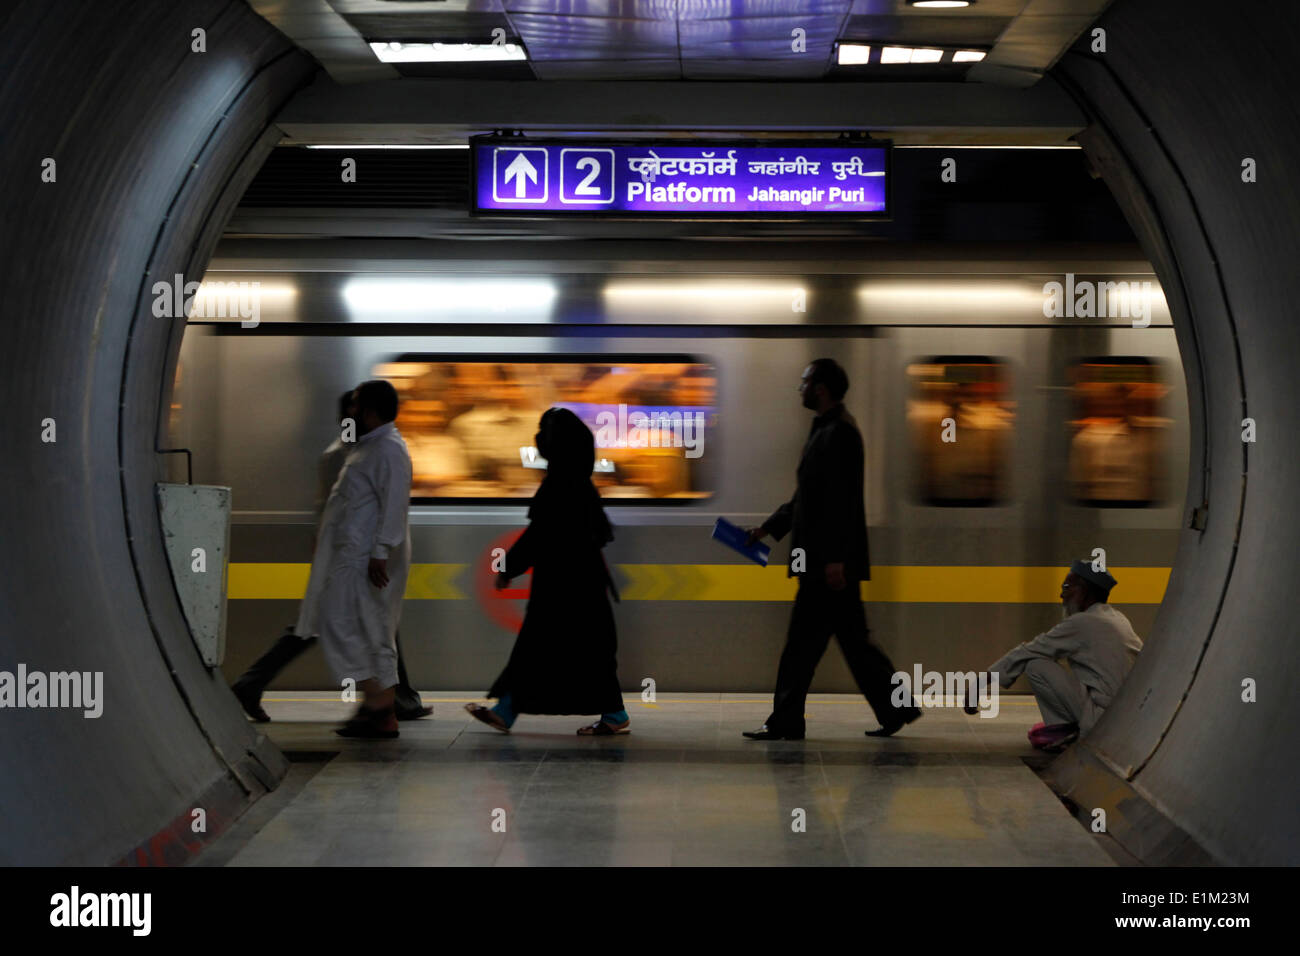 Delhi metro subway - Stock Image